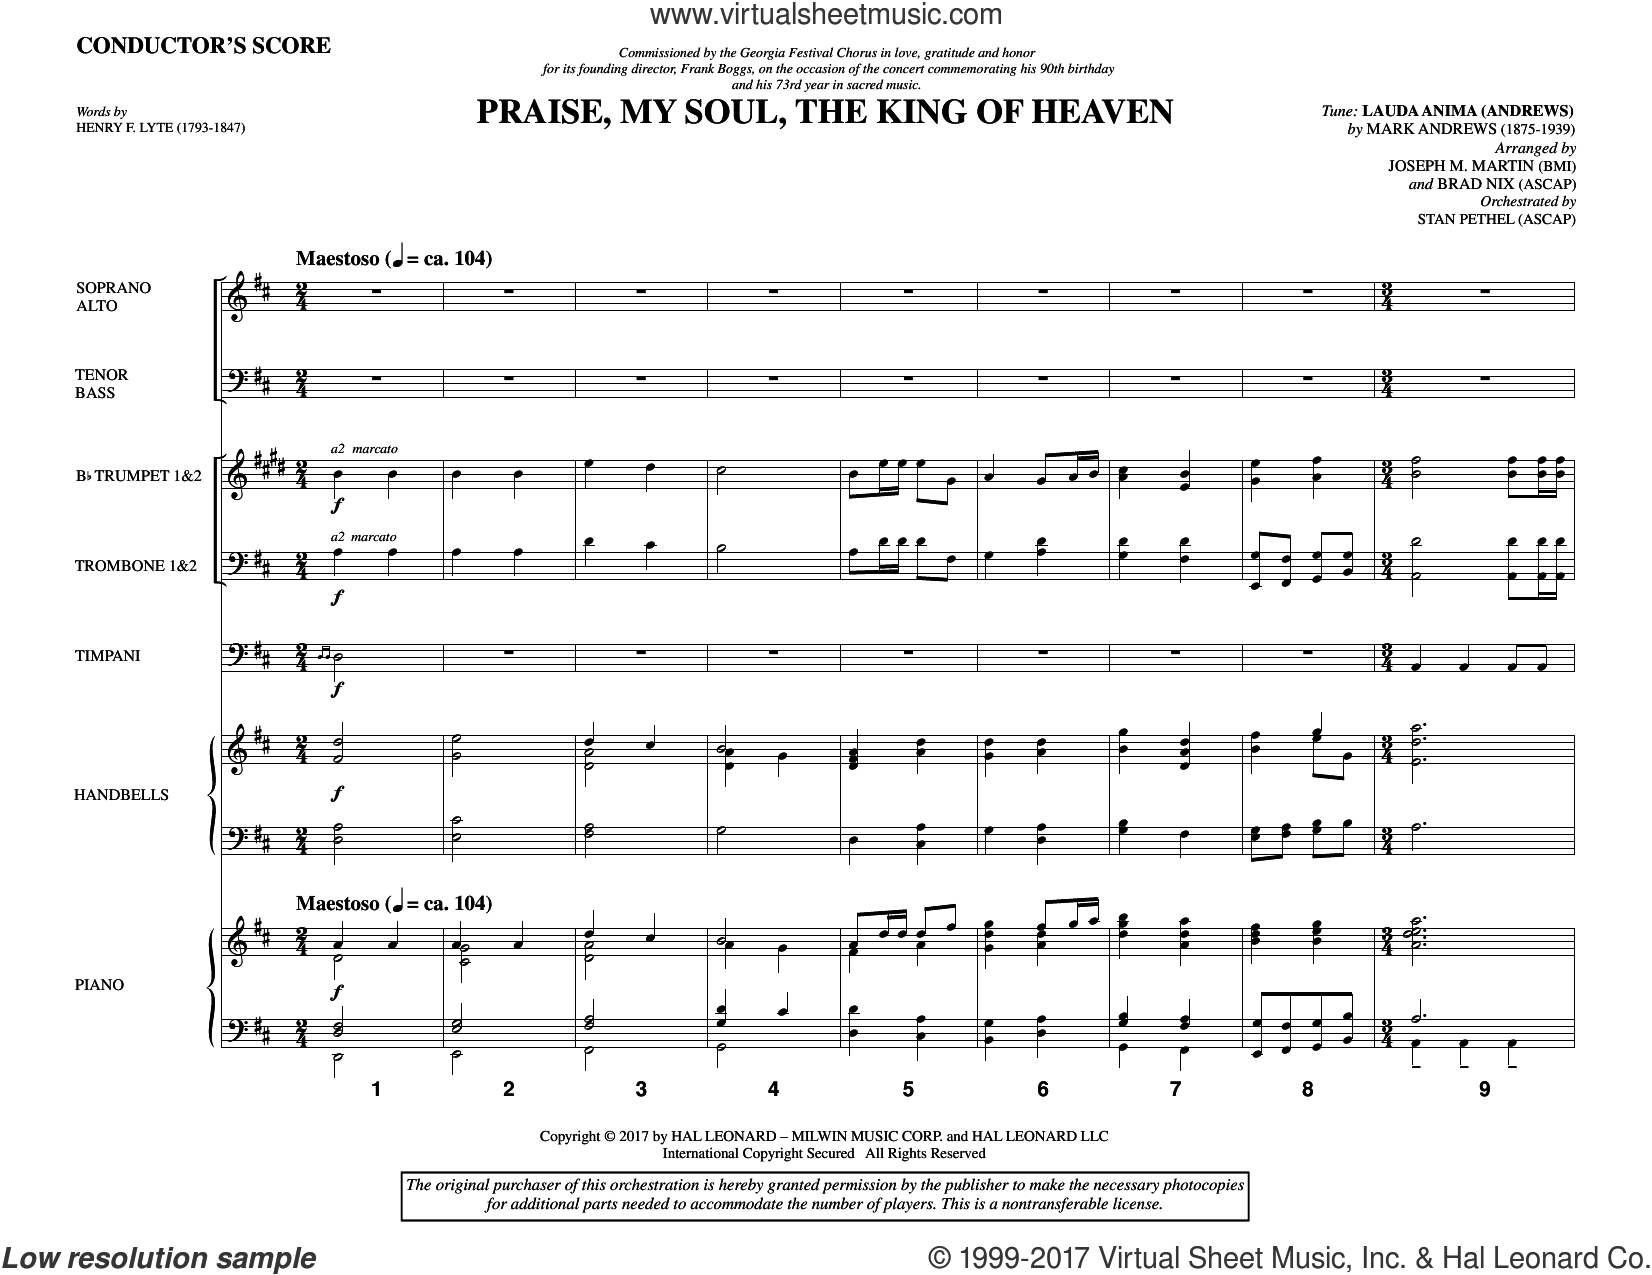 Praise, My Soul, the King of Heaven (COMPLETE) sheet music for orchestra/band by Joseph M. Martin, Brad Nix, Henry F. Lyte, John Goss and Mark Andrews, intermediate